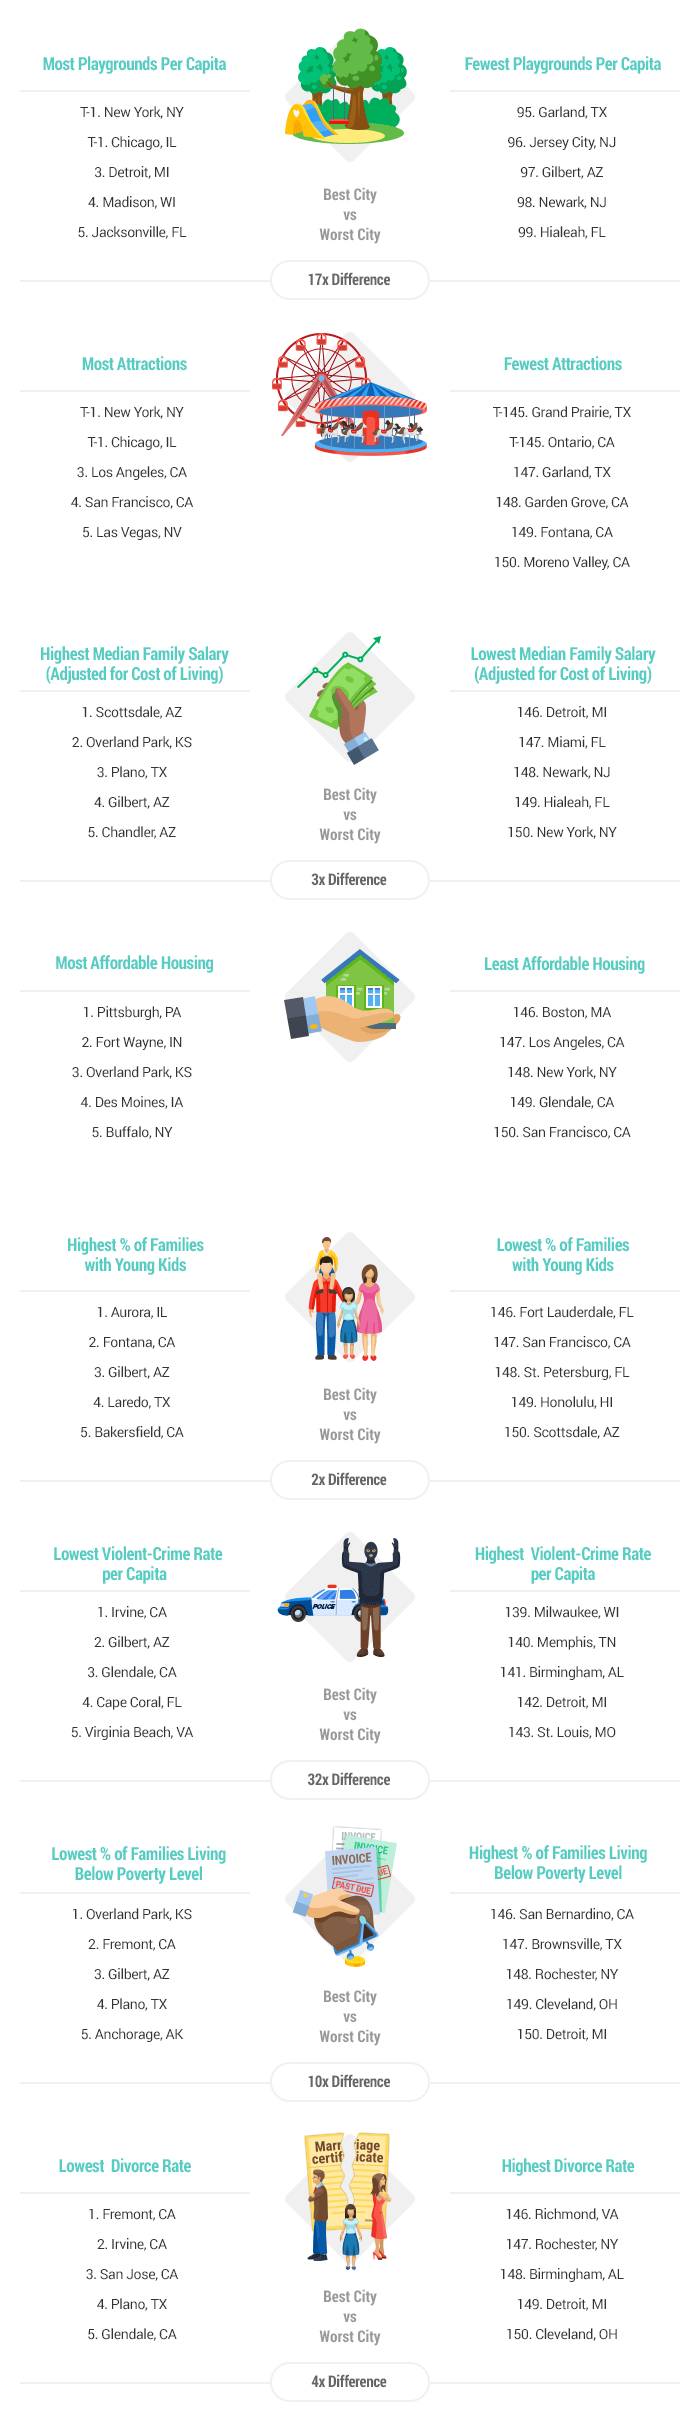 Artwork-2017-Best-&-Worst-Cities-for-Families-report-v1